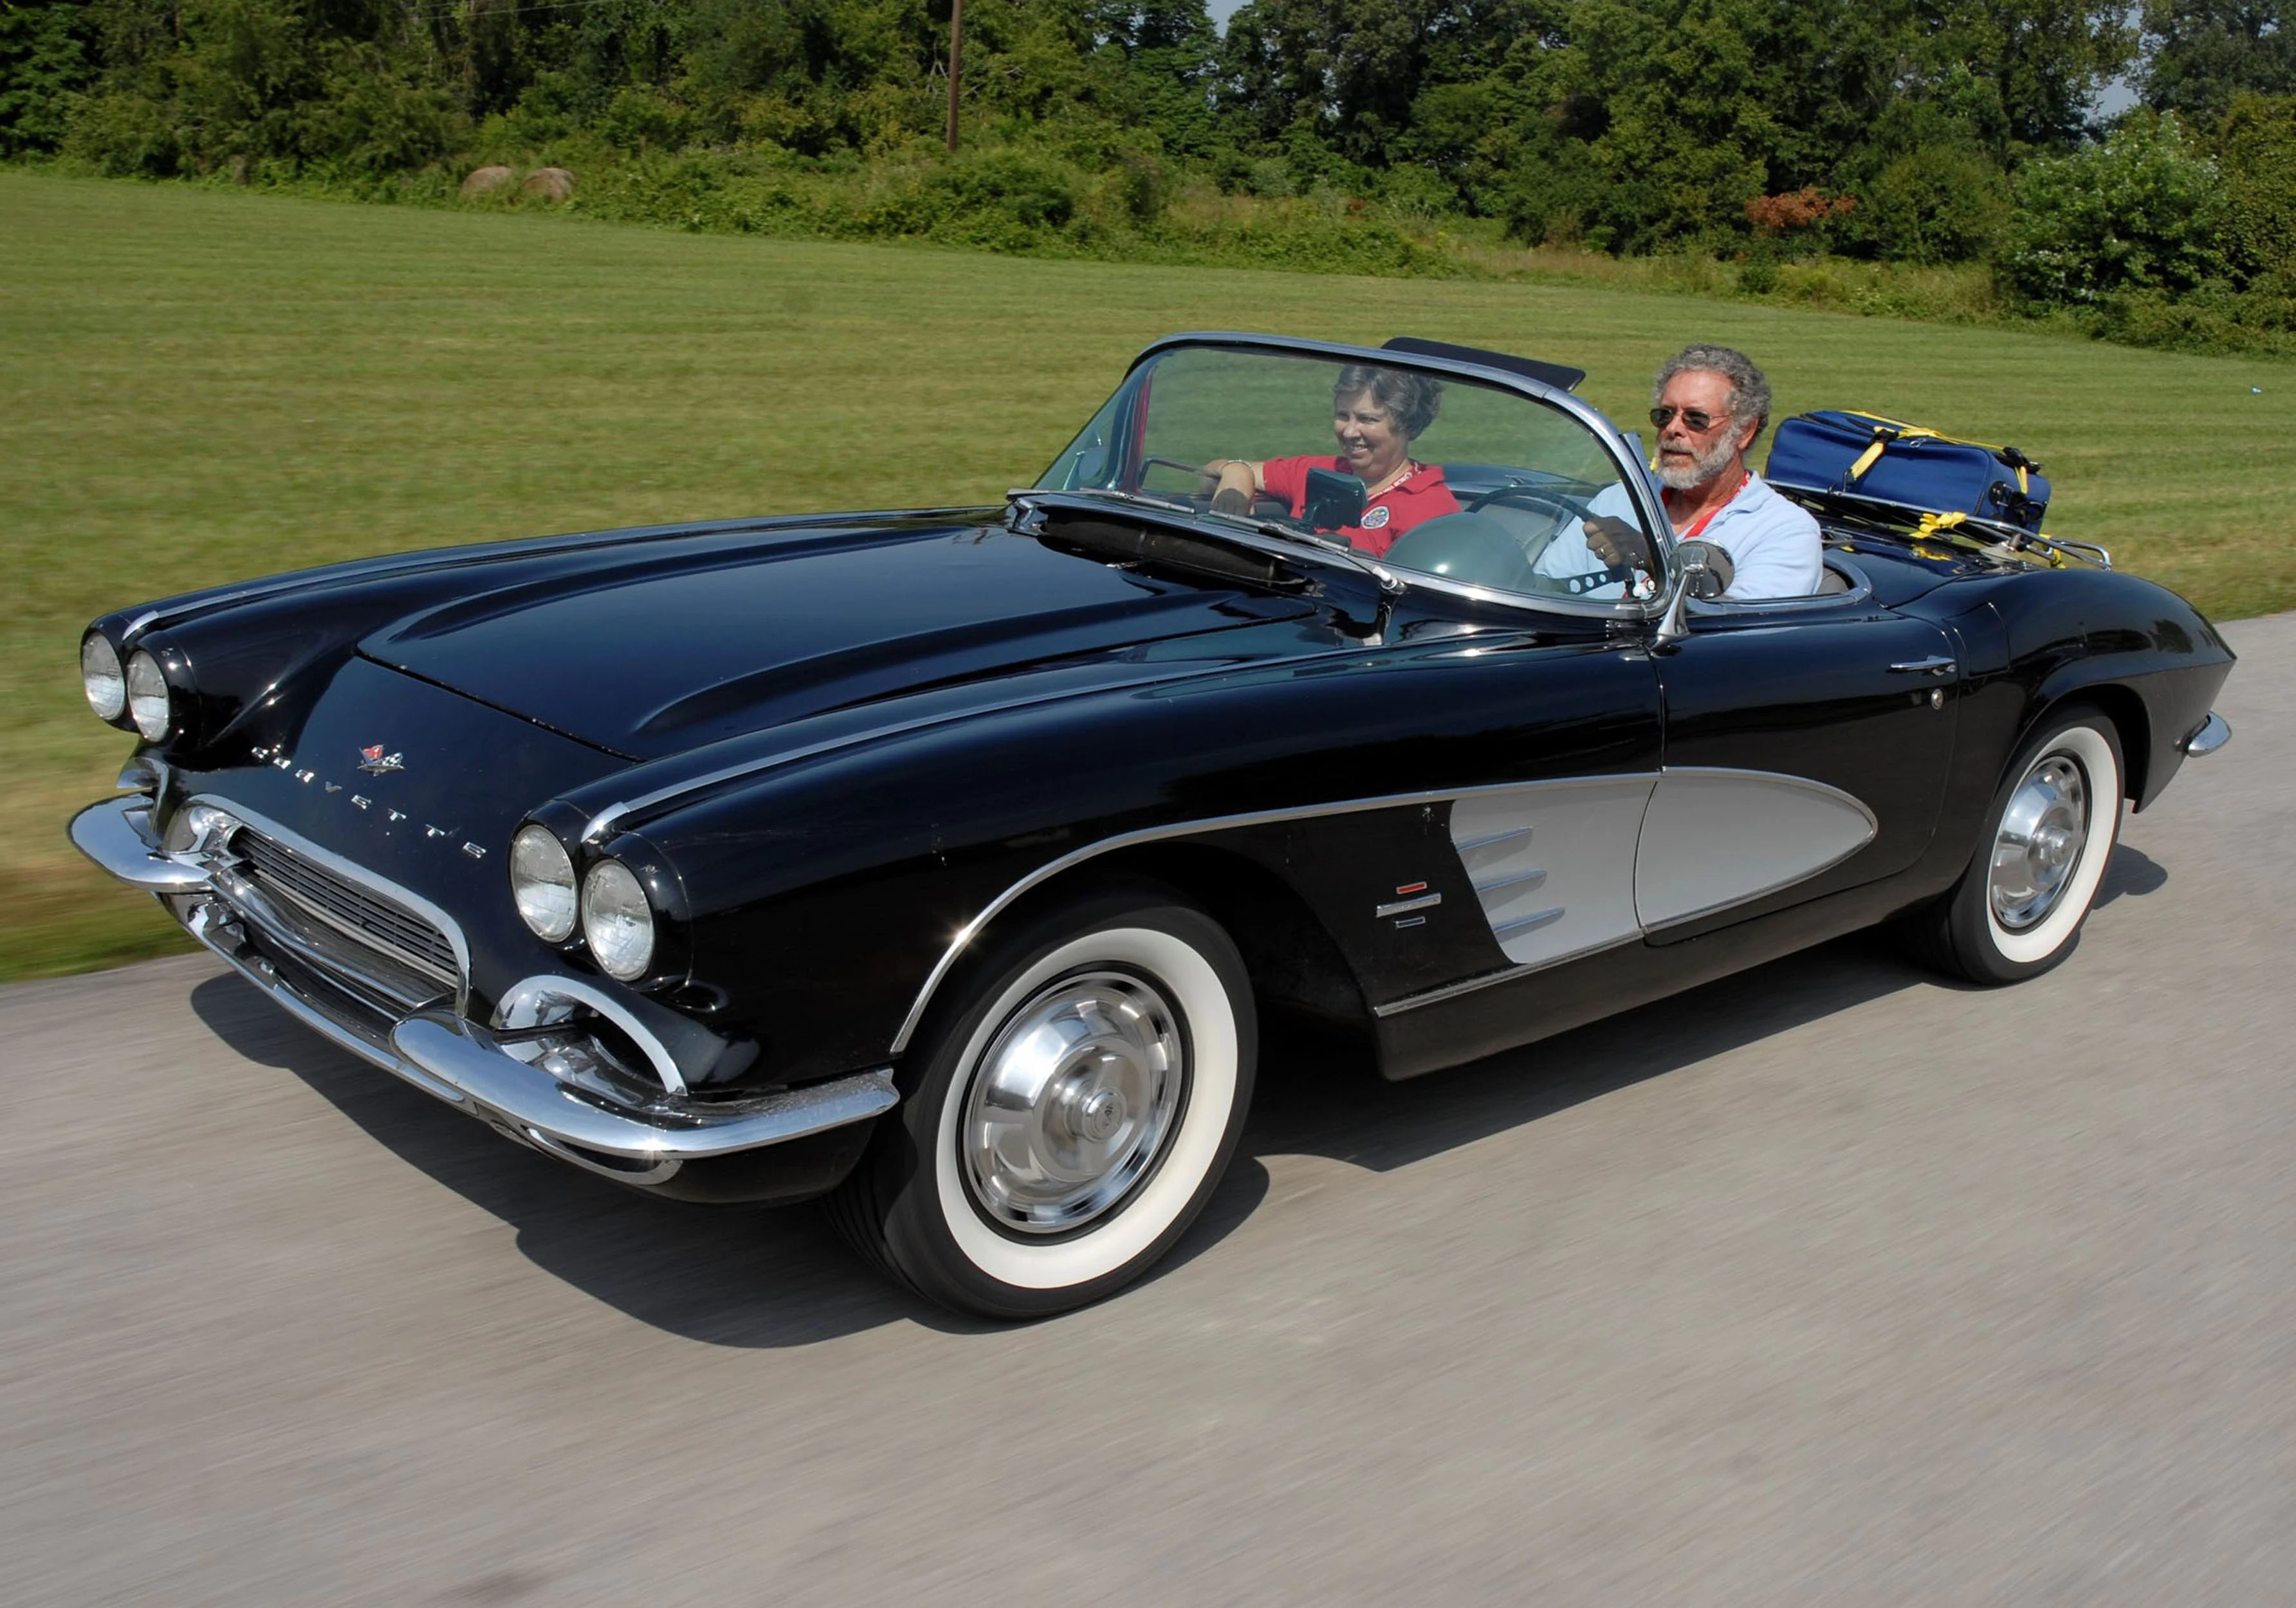 Drive Work Drive Your Corvette To Work Day Is Friday June 29th